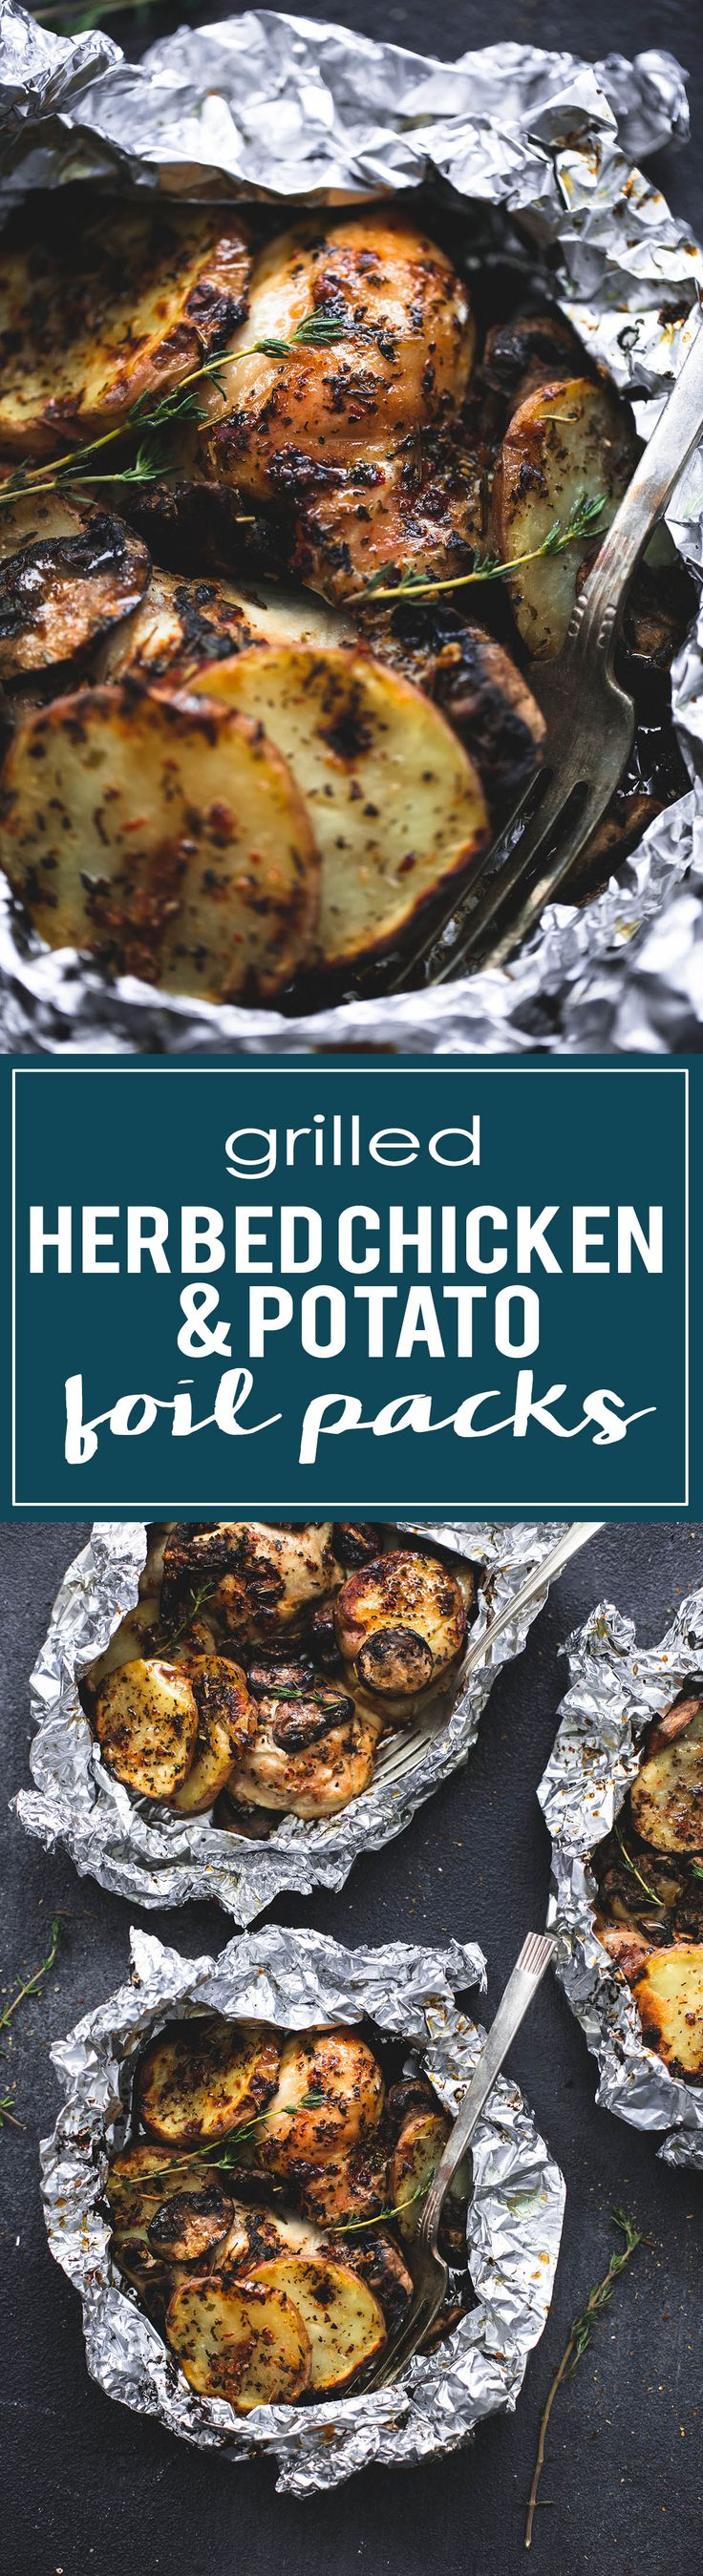 894 best quick easy recipes images on pinterest cooking food grilled herbed chicken potato foil packs httplecremedelacrumb forumfinder Image collections